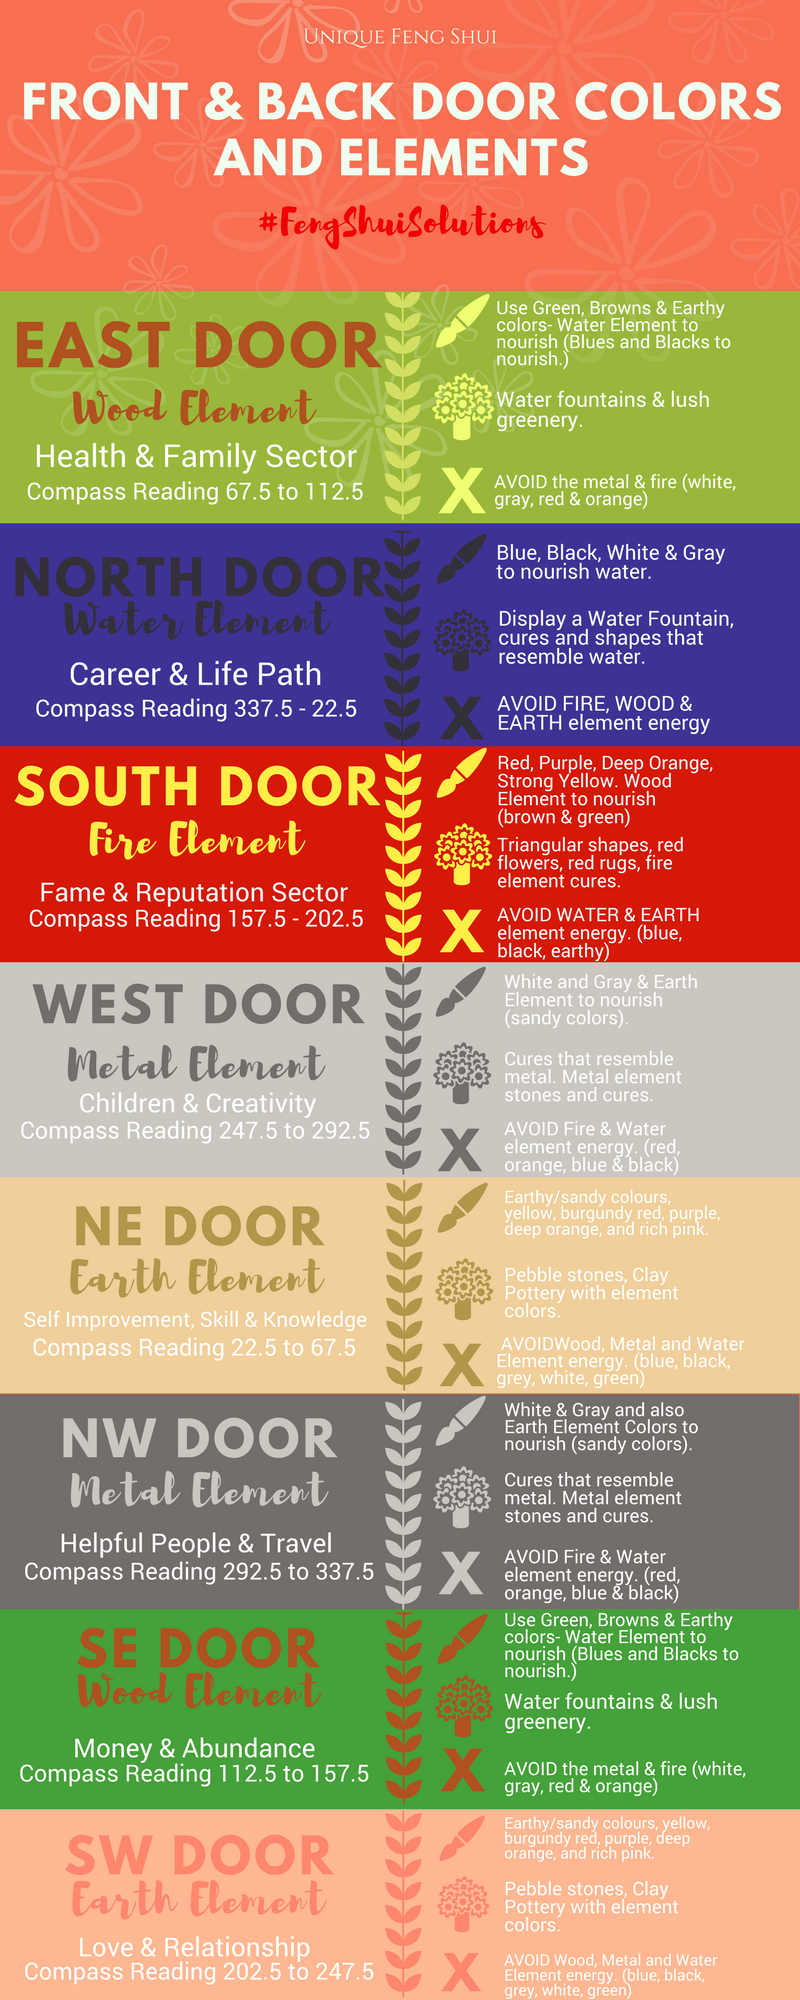 The feng shui of front back doors colors location - Feng shui exterior house paint colors ...